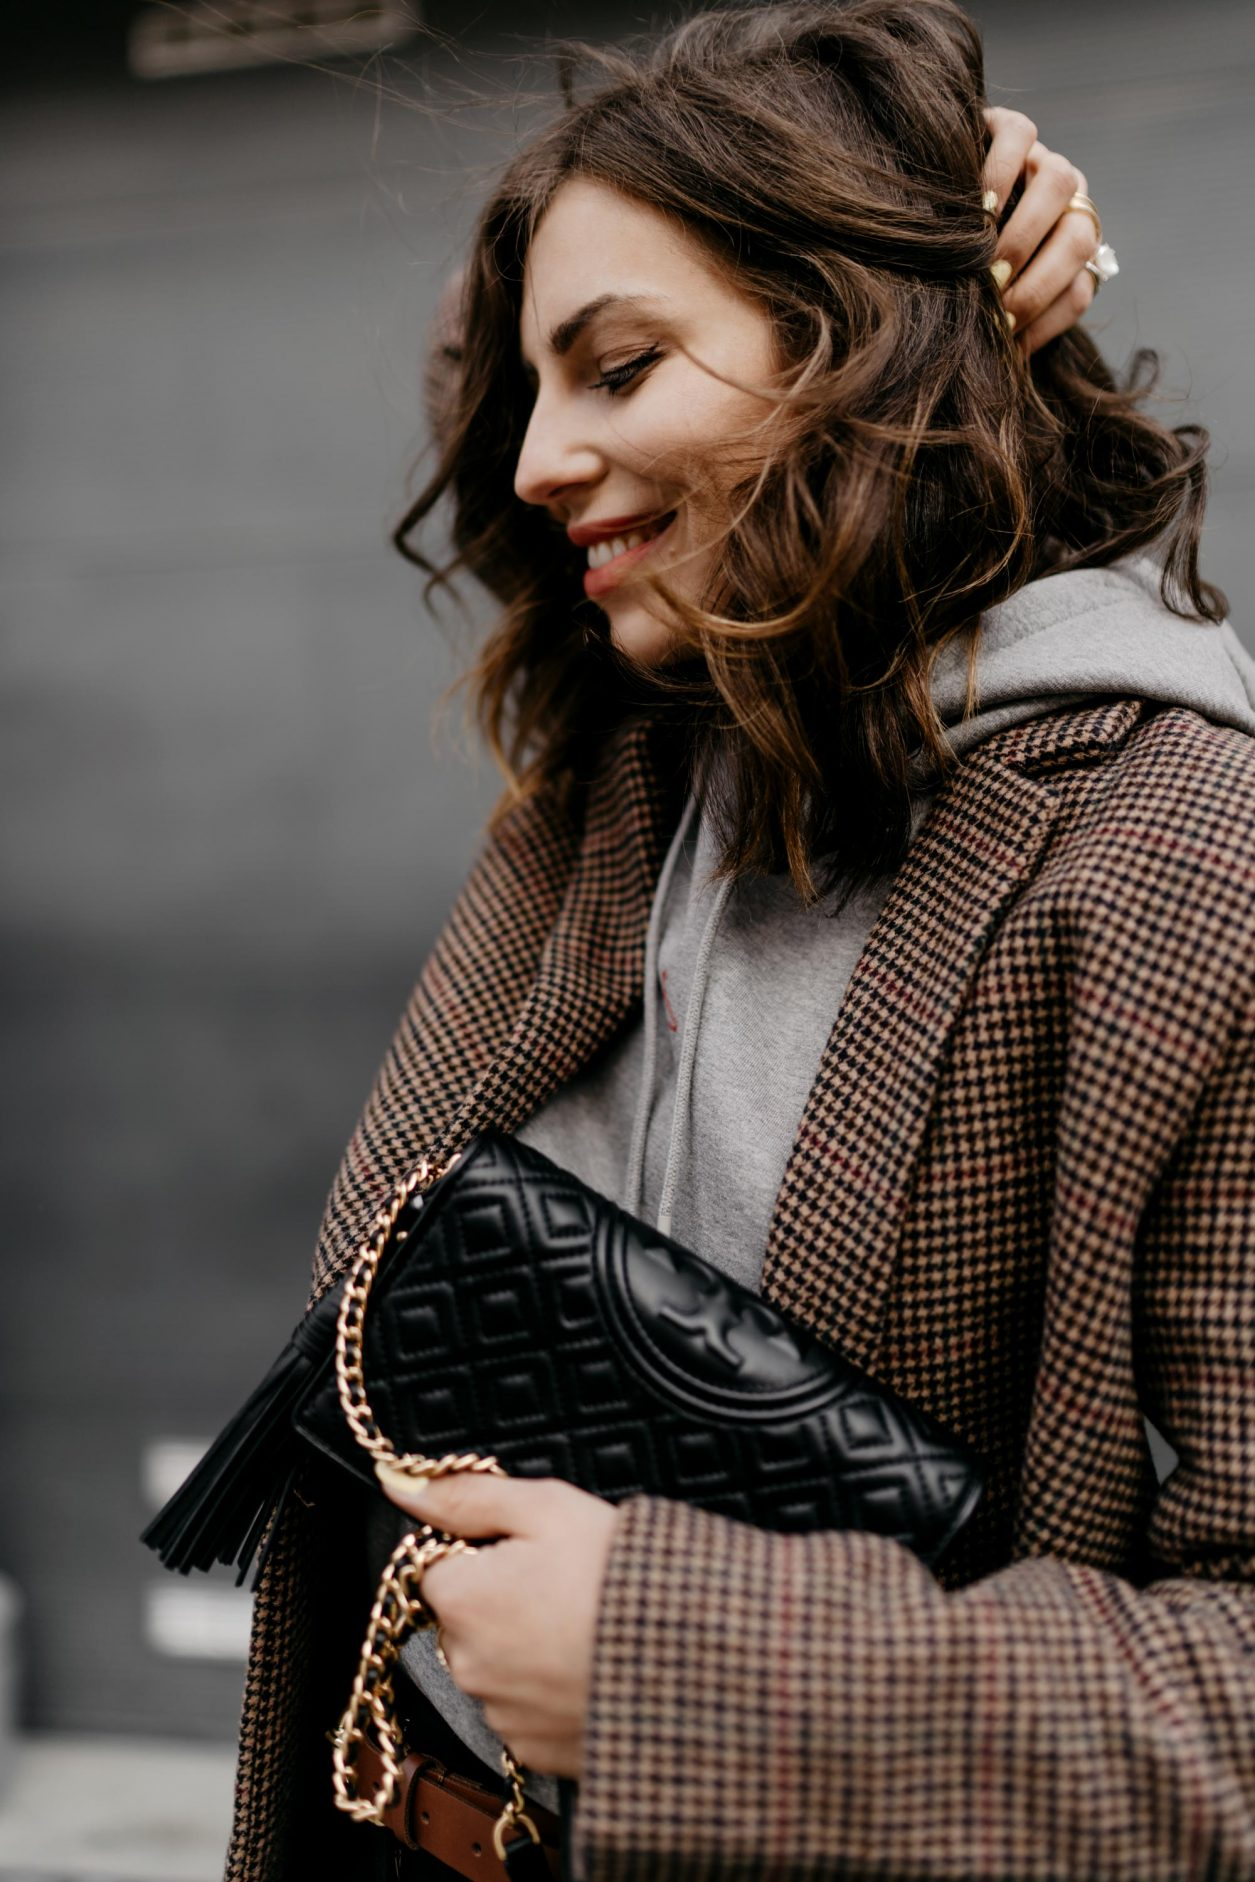 Streetstyle portrait by Masha Sedgwick | Fashion blogger from Berlin, Germany | Everyday business casual outfit inspiration, wearing brown checked Samsoe Samsoe blazer, light grey logo Holzweiler hoodie, brown leather Zign belt, Tory Burch shoulder mini bag